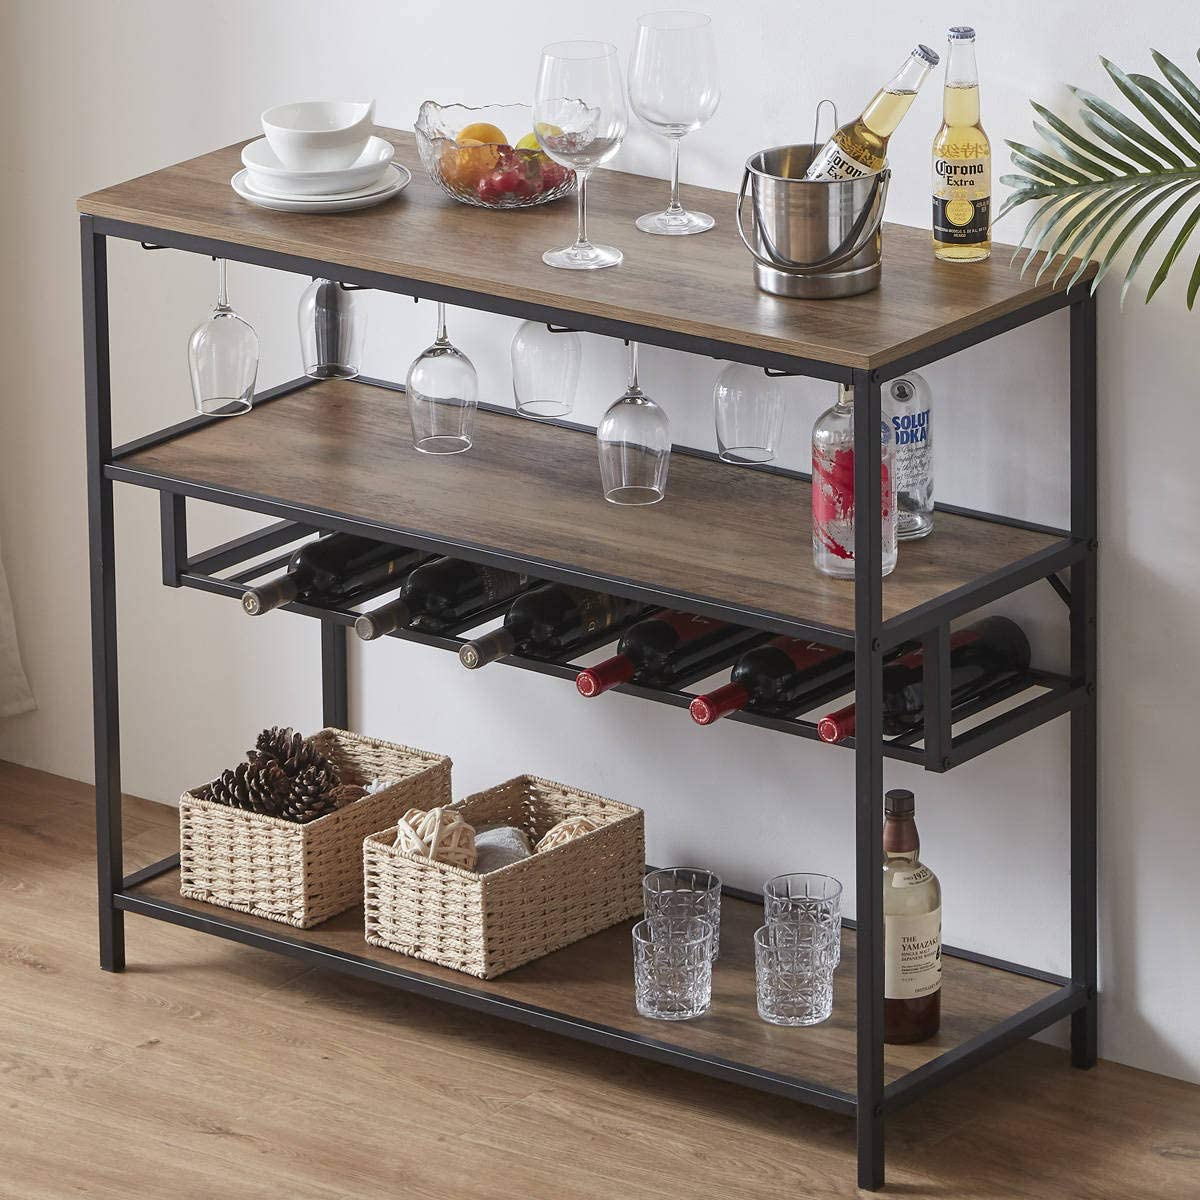 LVB Wine Rack Table, Modern Metal and Wood Wine Bar Cabinet Freestanding Floor, Liquor Wine Storage Stand with Bottle Shelf and Glass Holder for Home Kitchen Dining Room, Rustic Oak, 40 Inch